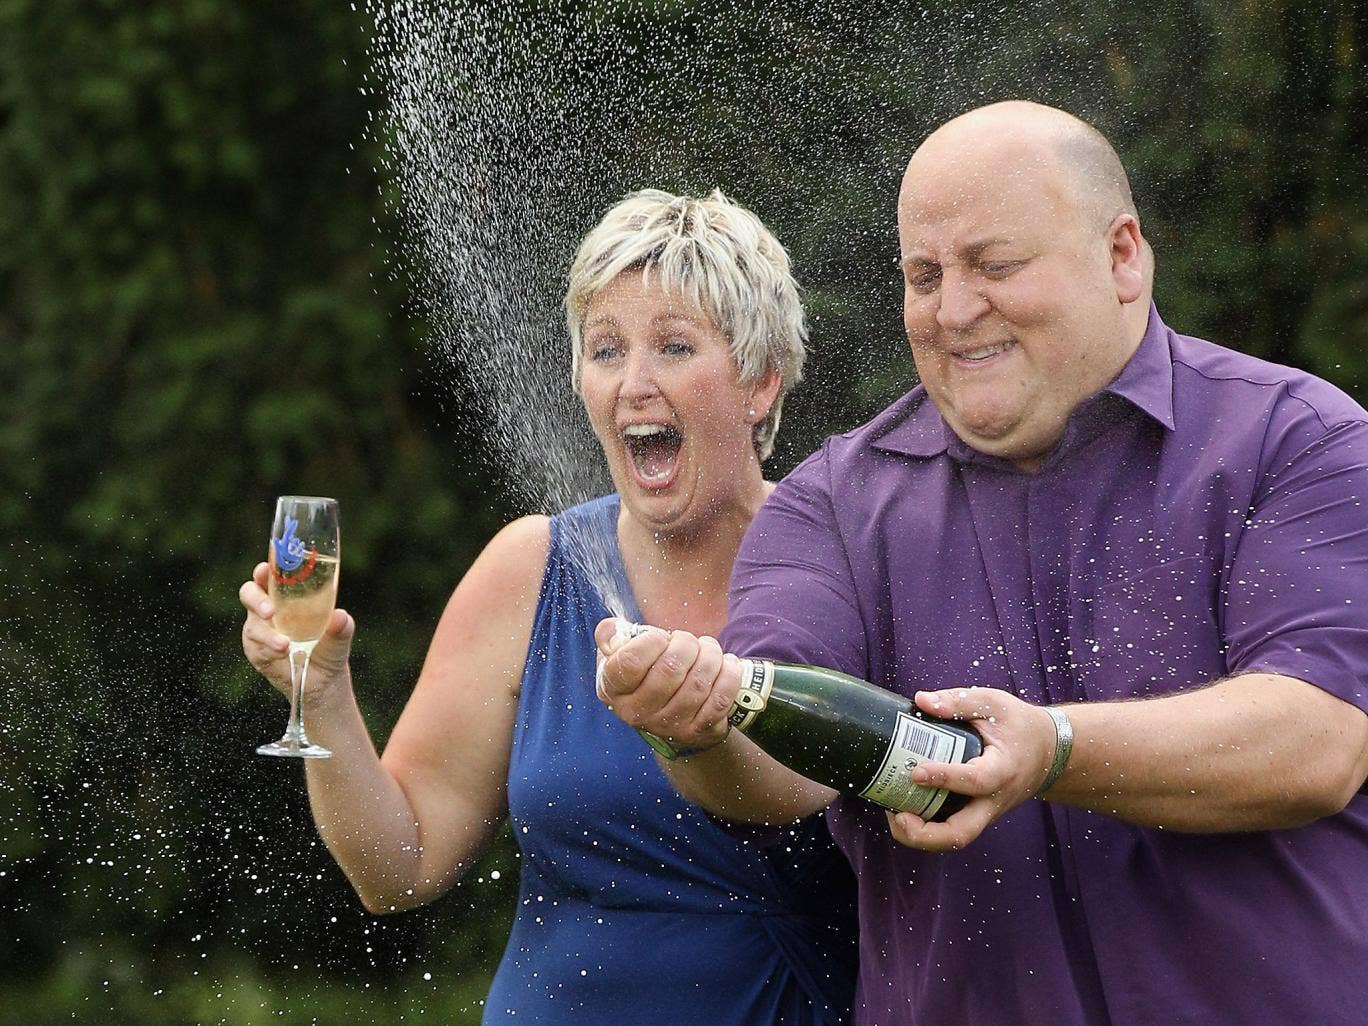 Flashback to August 2012: Adrian and Gillian Bayford celebrate winning the EuroMillions jackpot of over £148 million